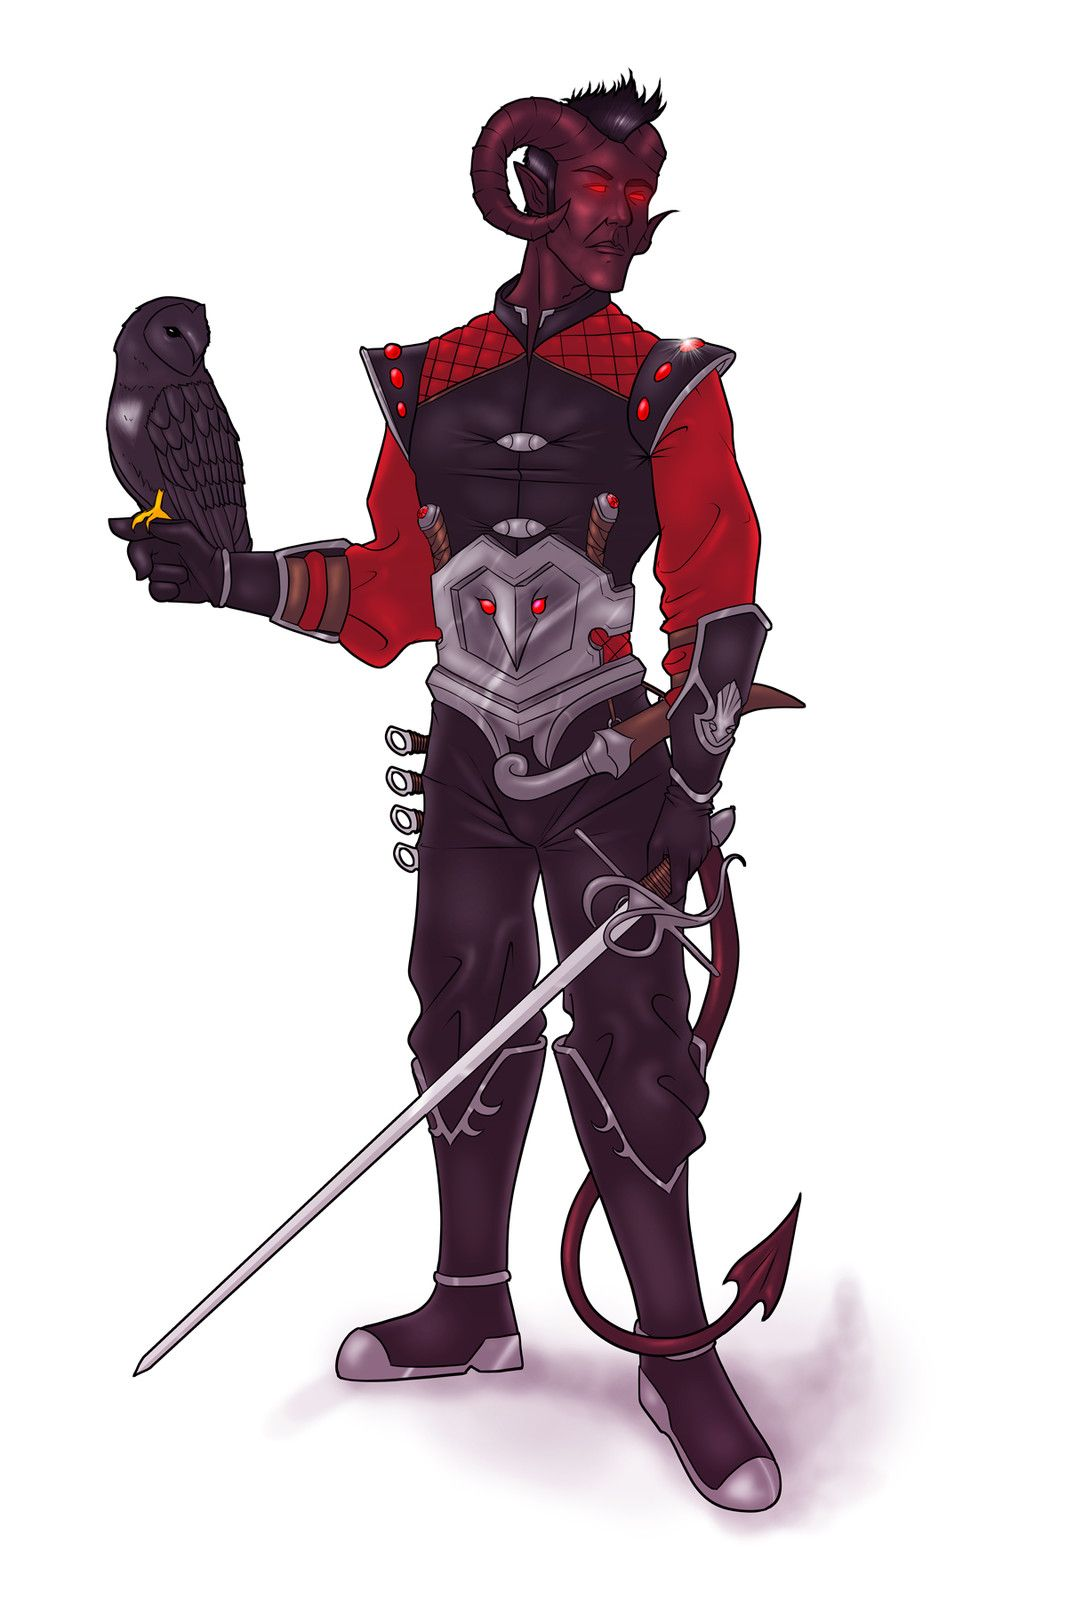 Pin by Matthew Bartlett on Tieflings in 2019 | Tiefling